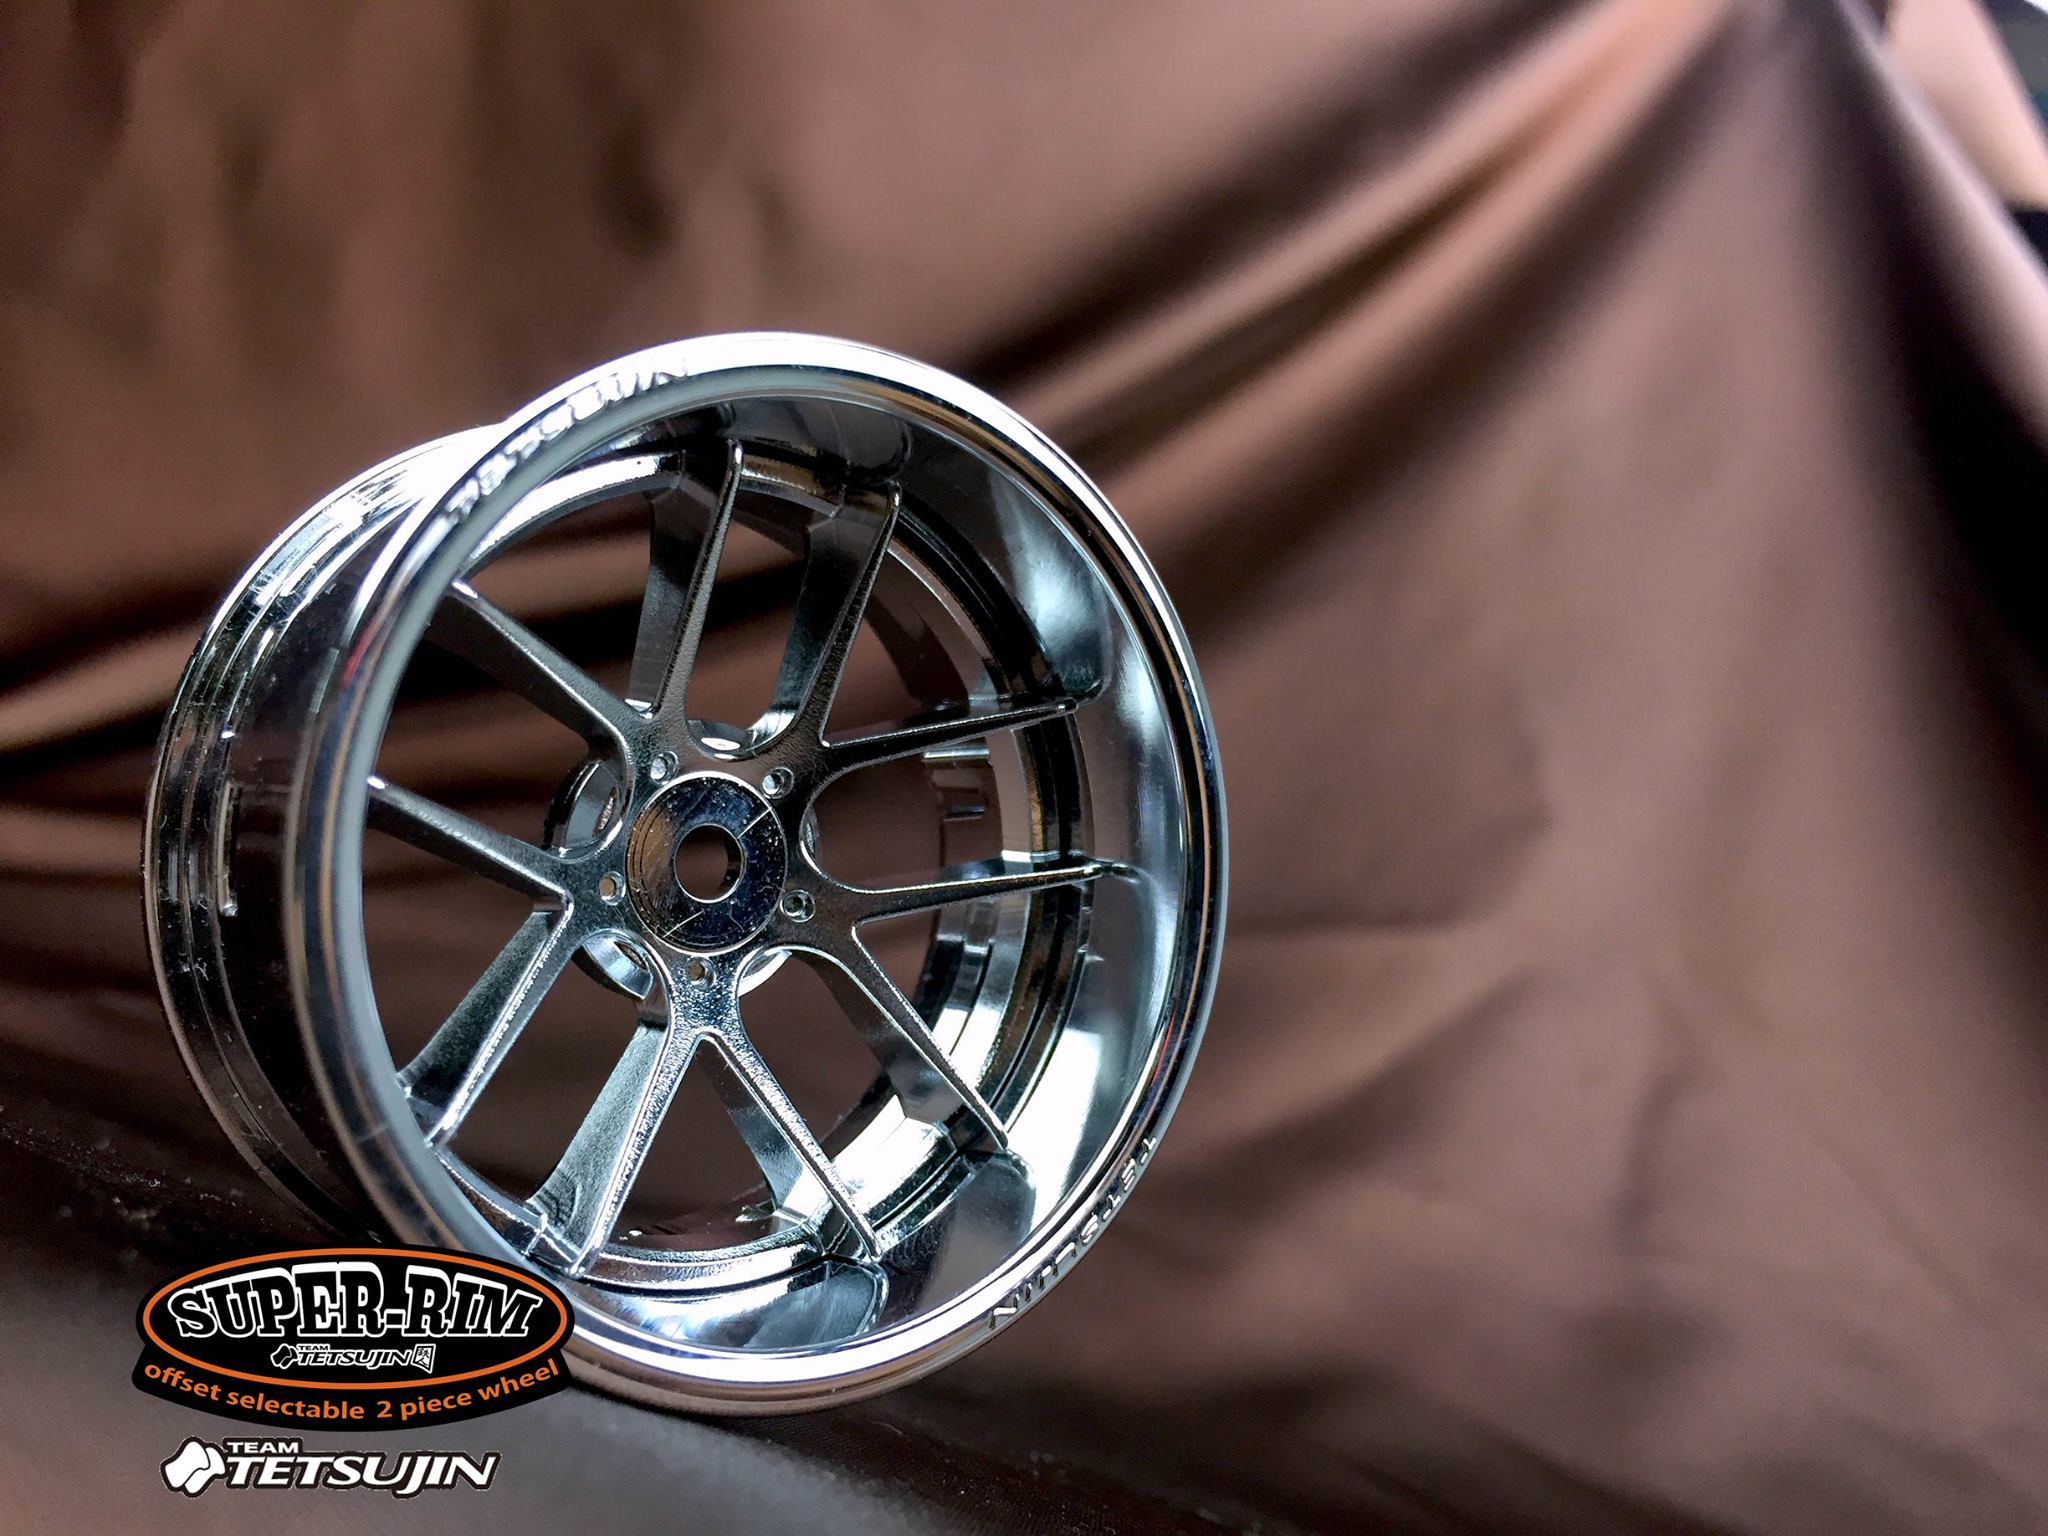 TT-7584  Super rim Chrome RIM02/Jasmine